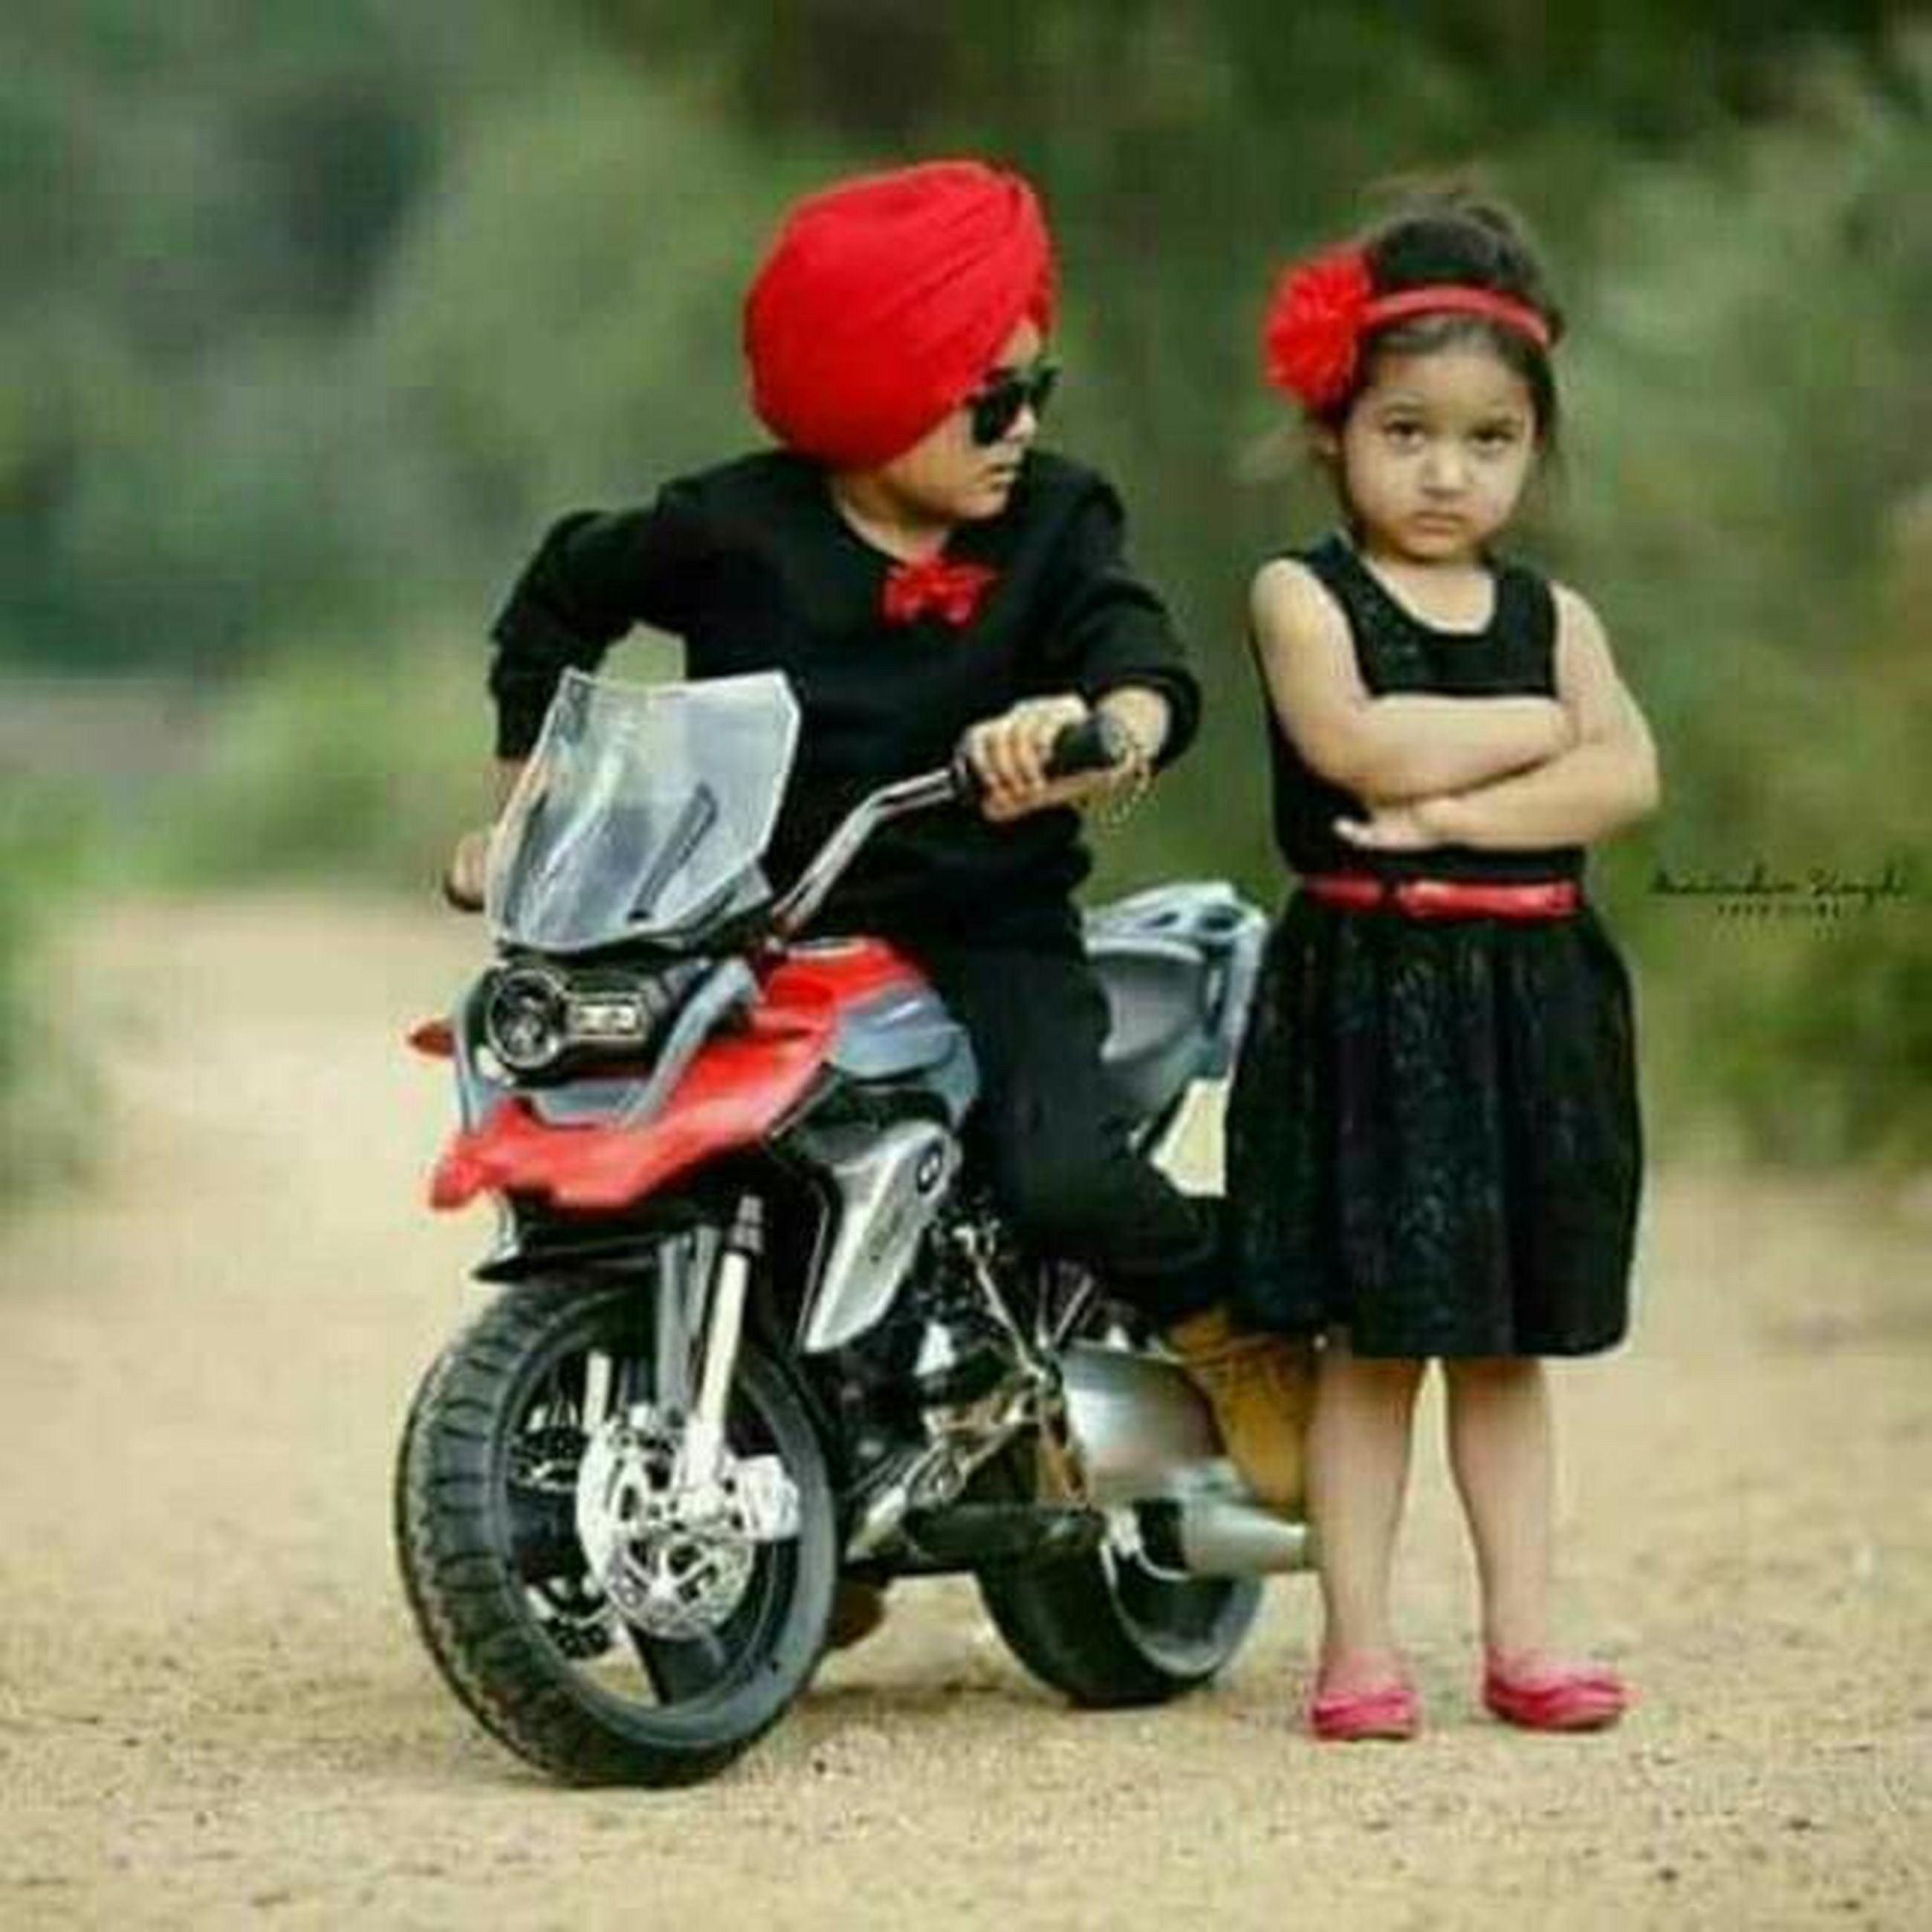 two people, full length, child, childhood, outdoors, motorcycle, males, people, happiness, togetherness, day, friendship, headwear, smiling, helmet, adult